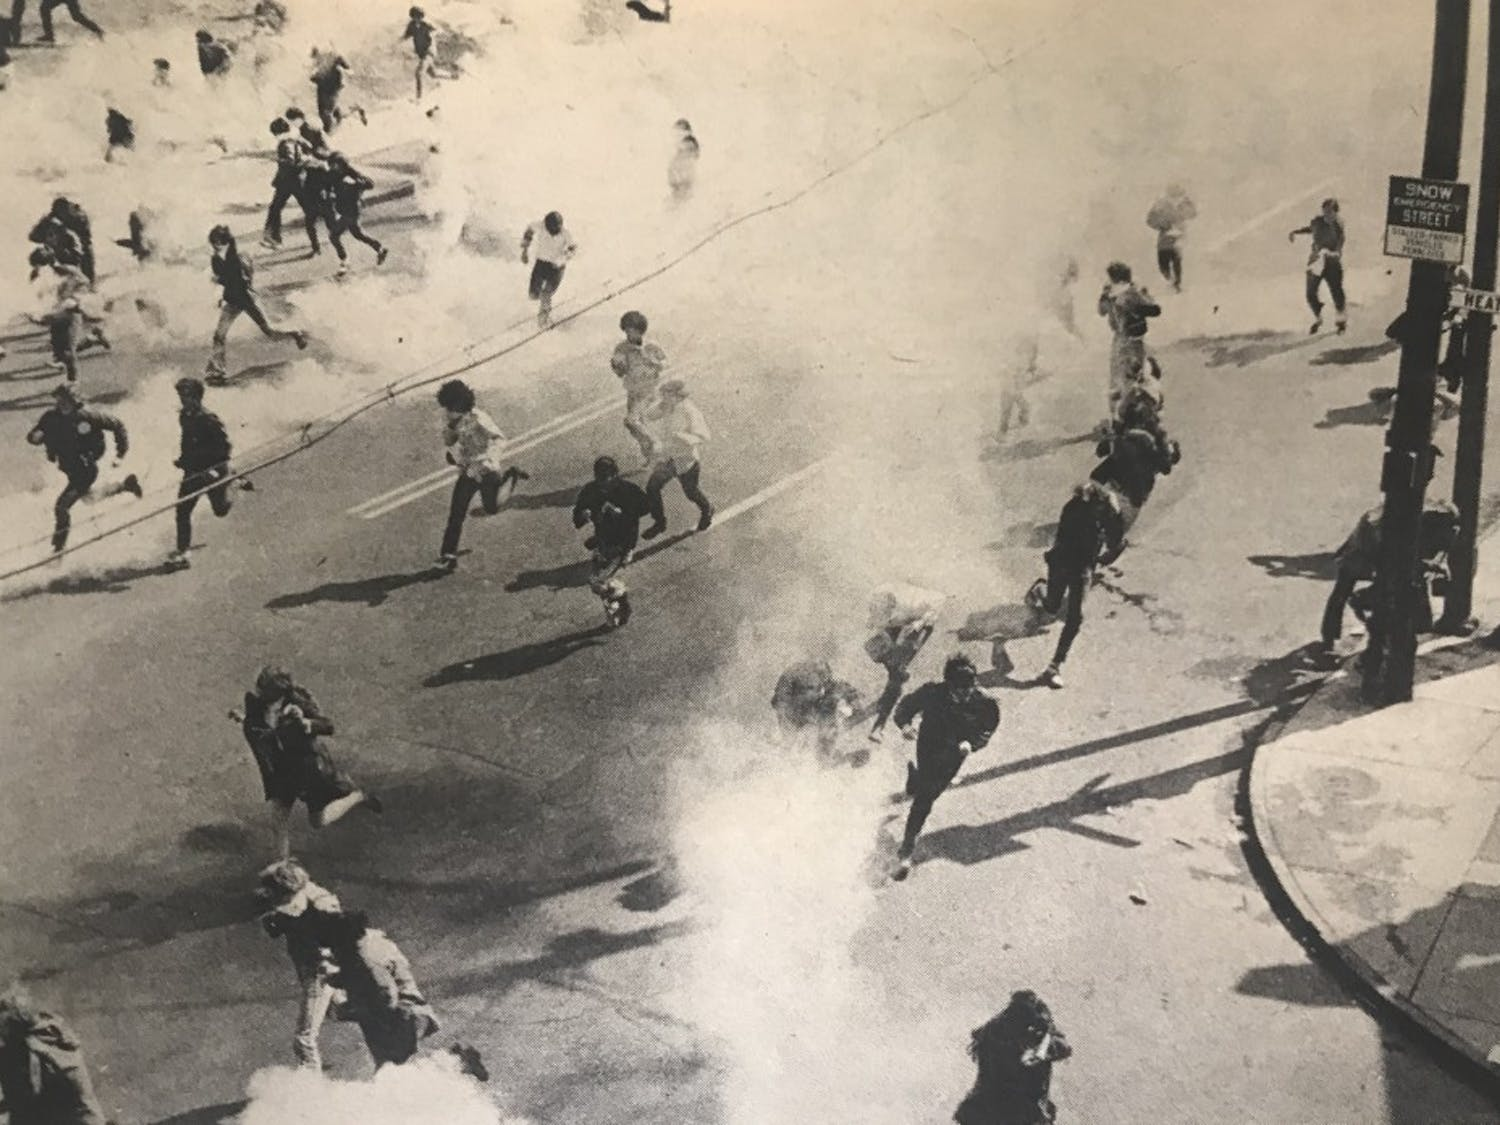 Students scatter from the South Campus when police released canisters of tear gas during an anti-Vietnam War demonstration.